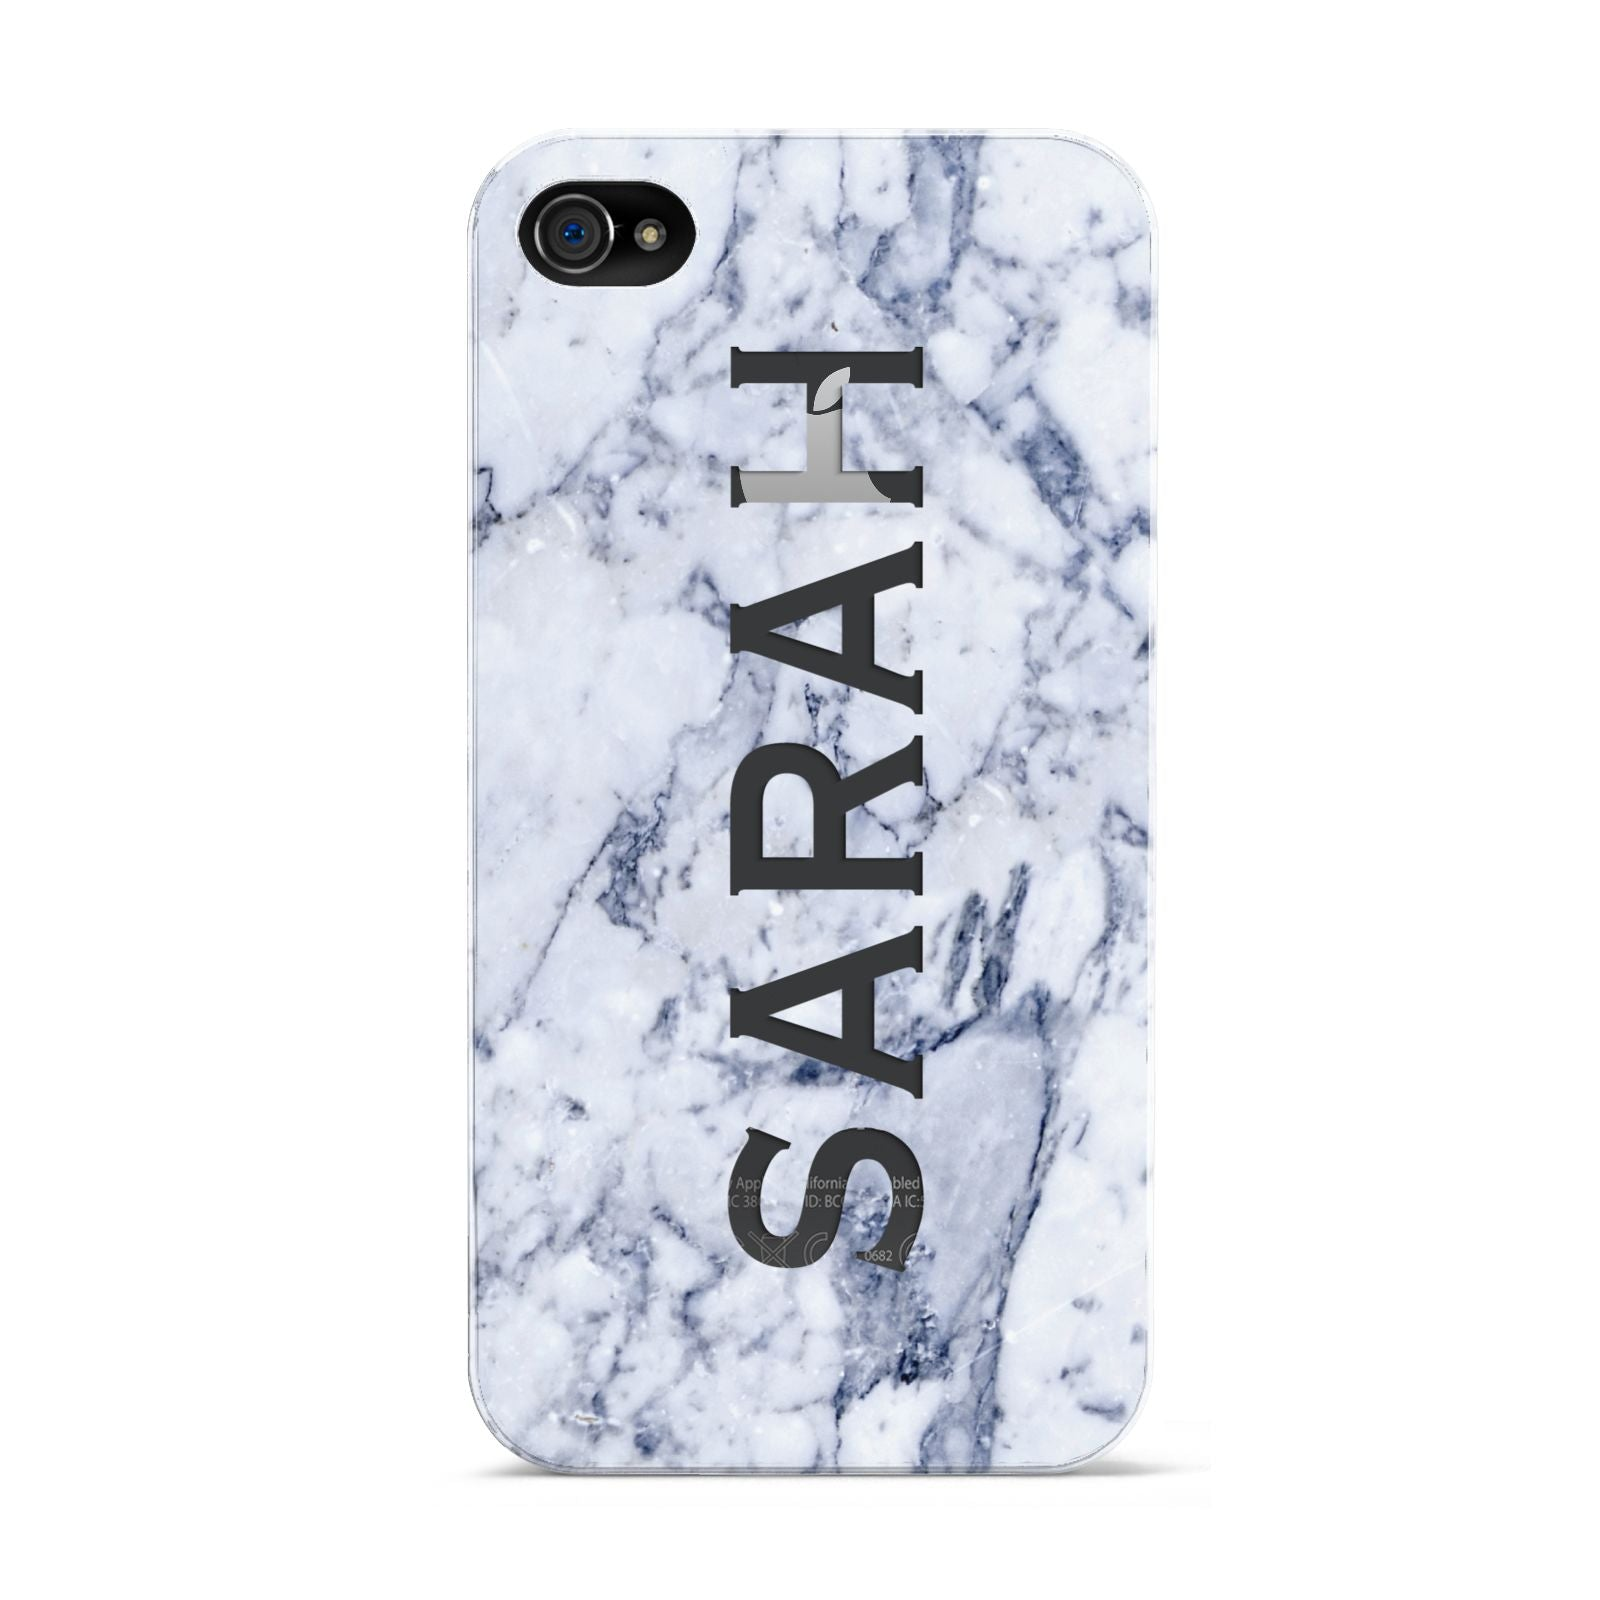 Personalised Clear Name Cutout Blue Marble Custom Apple iPhone 4s Case